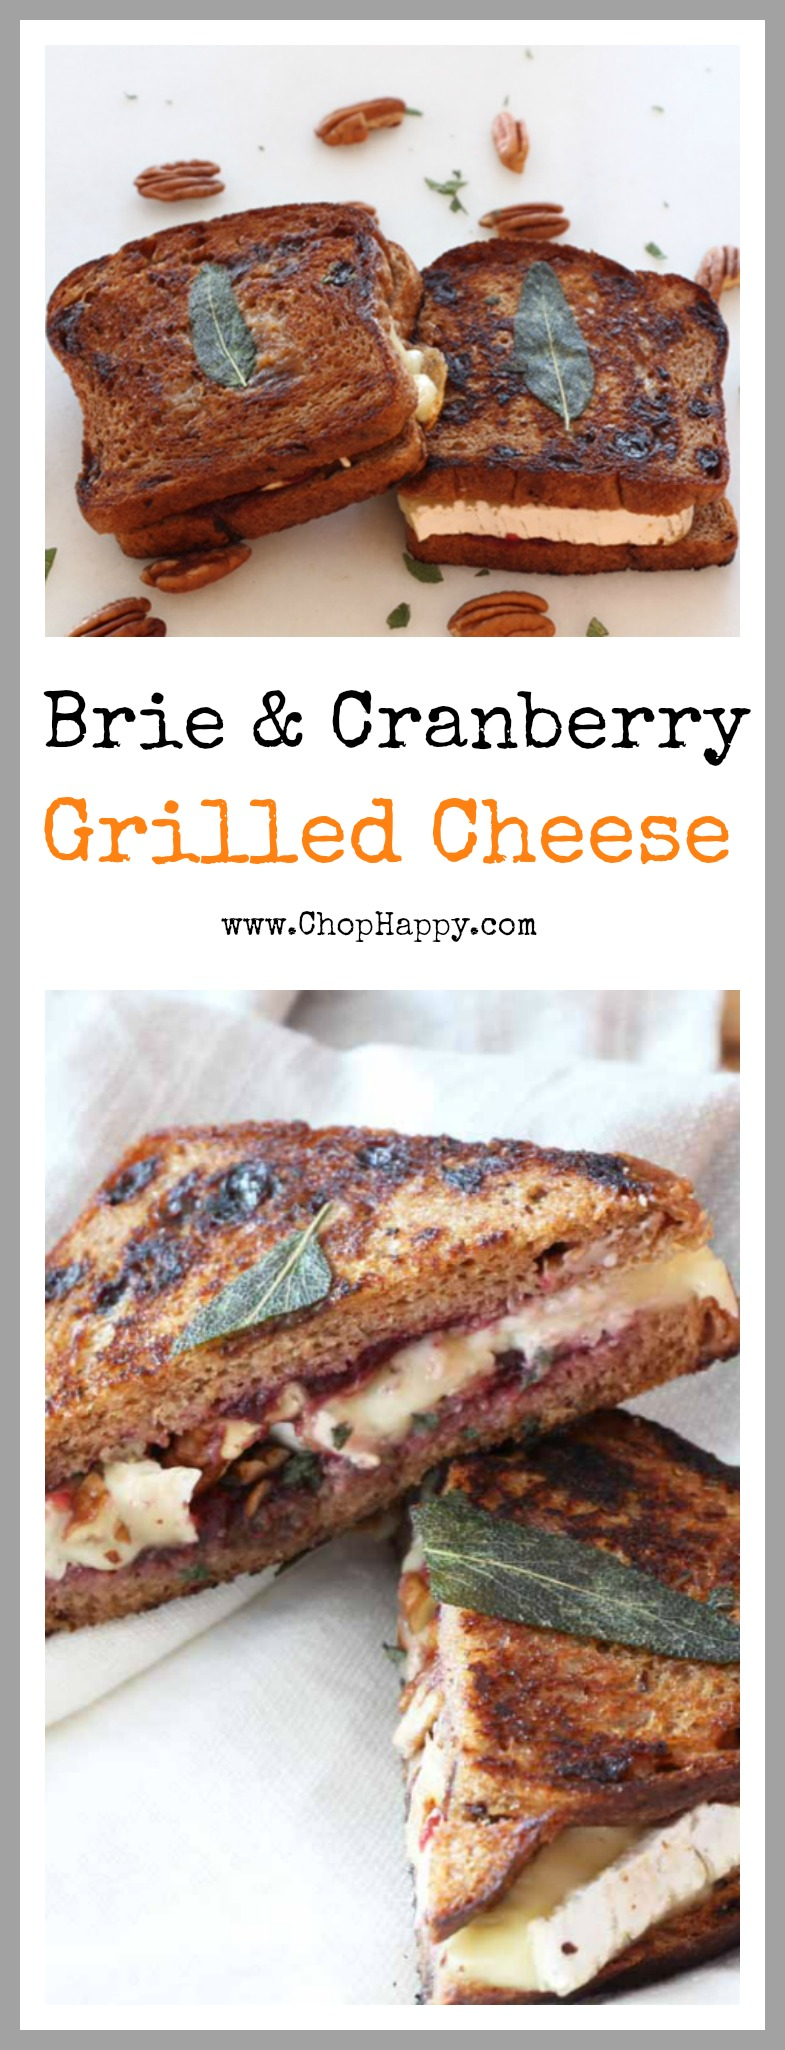 Brie and Cranberry Grilled Cheese Recipe- is so easy and creamy sweet, cheesy, and delish. Tastes like the baked brie appetizer between two pieces of cinnamon raisin bread. www.ChopHappy.com